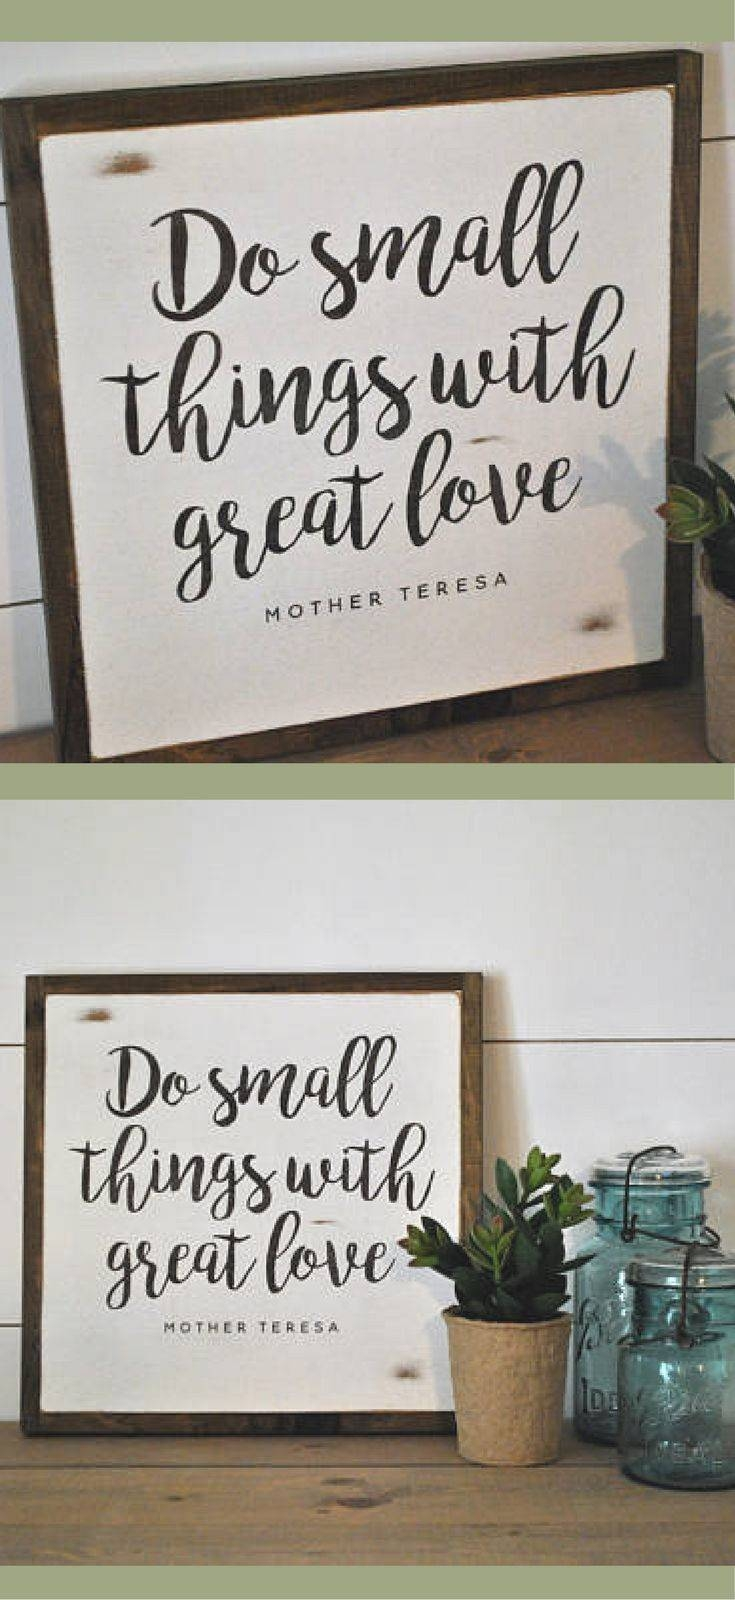 Best 25+ Farmhouse Wall Art Ideas On Pinterest | Living Room Wall In Current Farmhouse Wall Art (View 10 of 25)